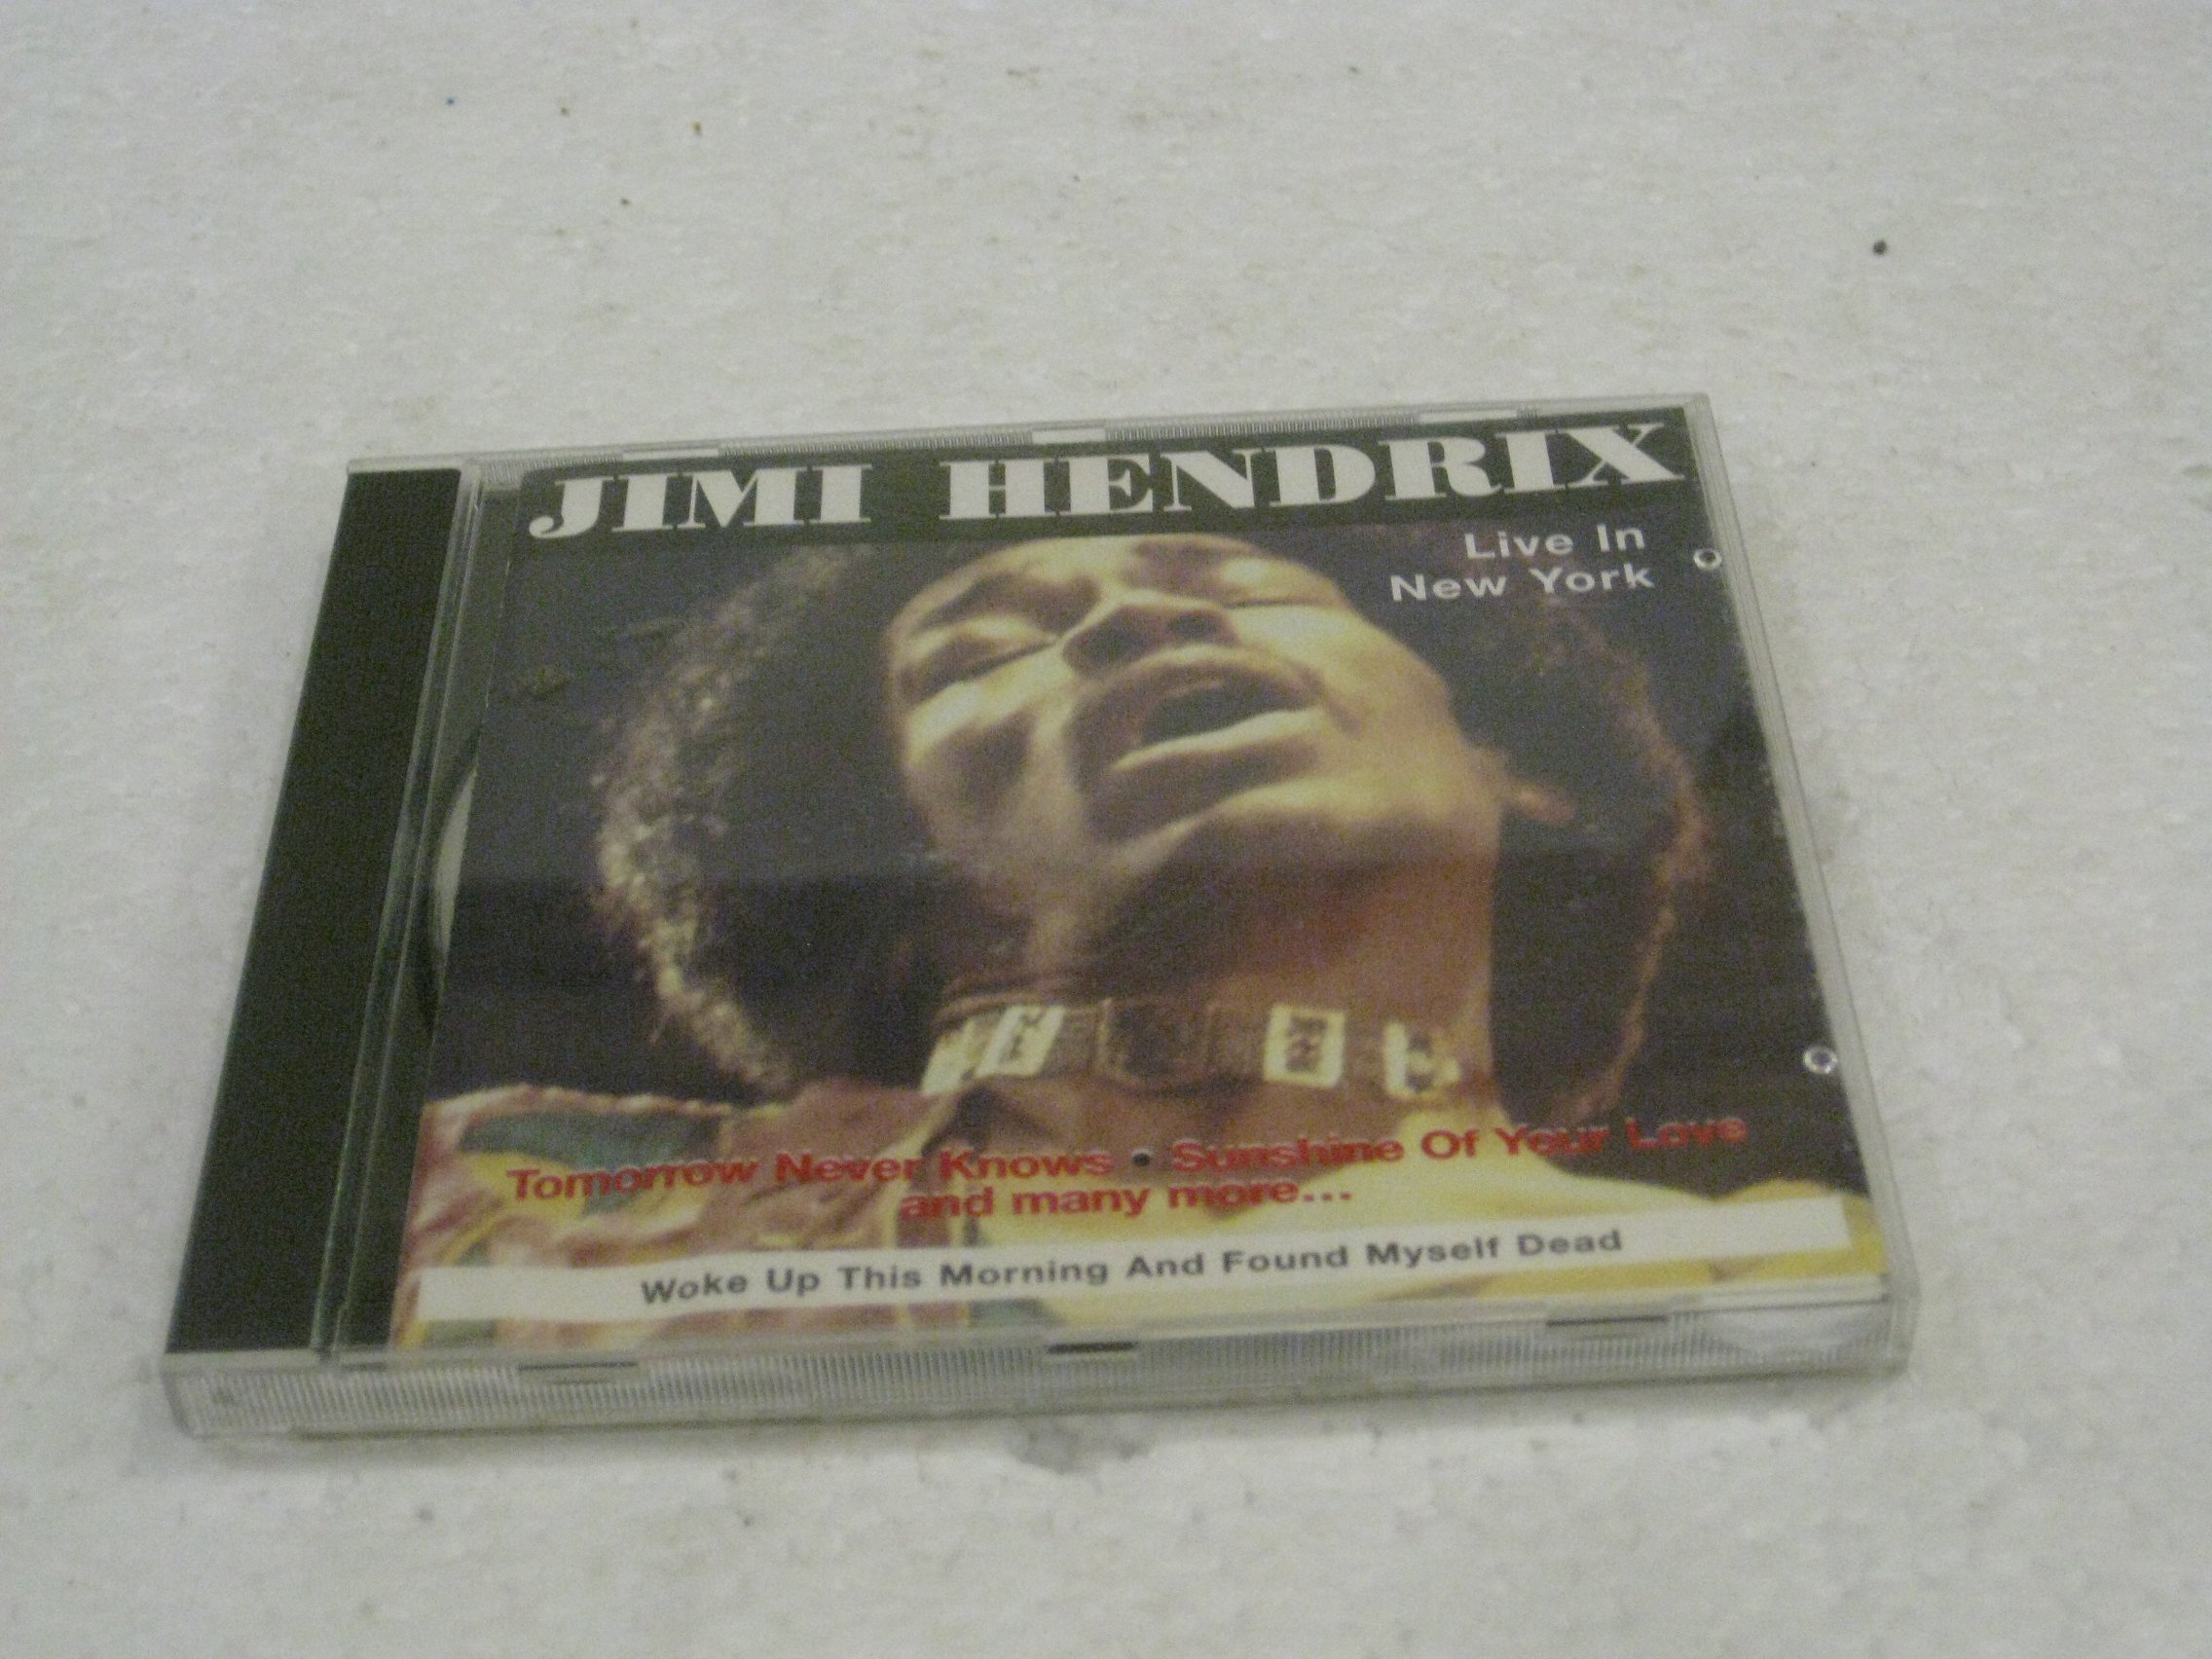 Jimi Hendrix Live In New York Woke Up This Morning And Found Myself Dead by